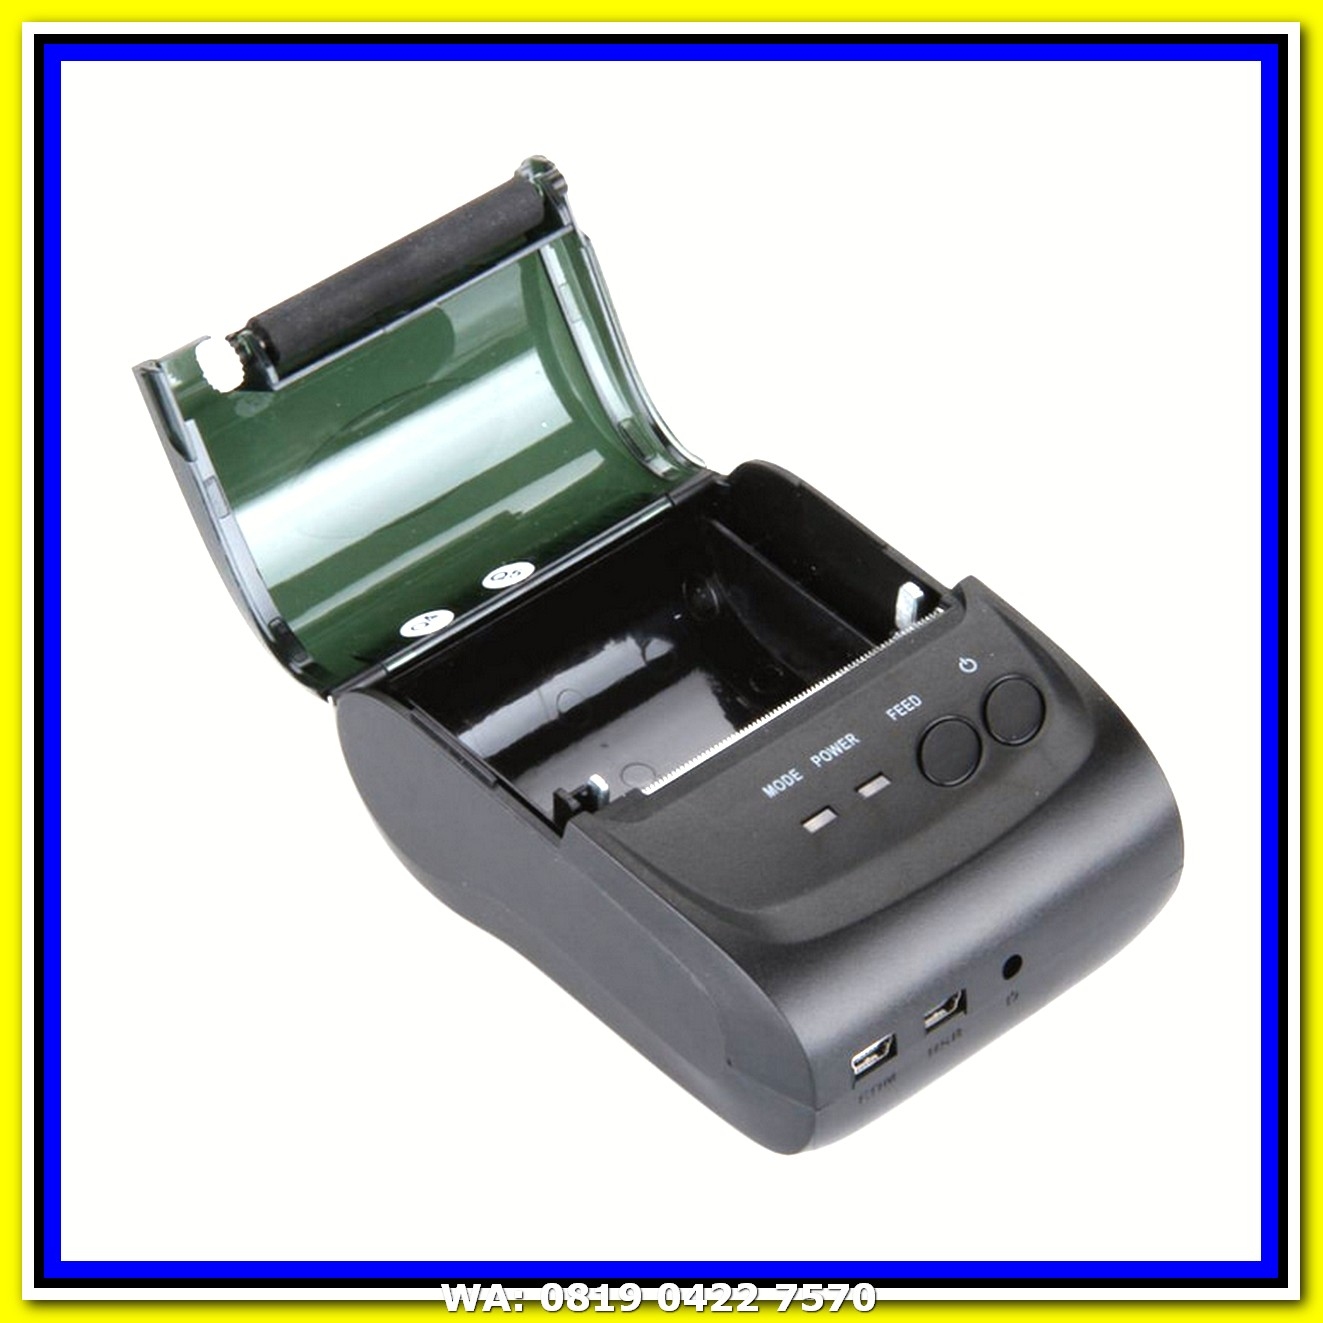 Zjiang Pos Thermal Receipt Printer 575mm Zj 5890k Daftar Harga Suntec Roll Kertas Edc Struk Cash Register For Point Of Sales Mini Portable Bluetooth